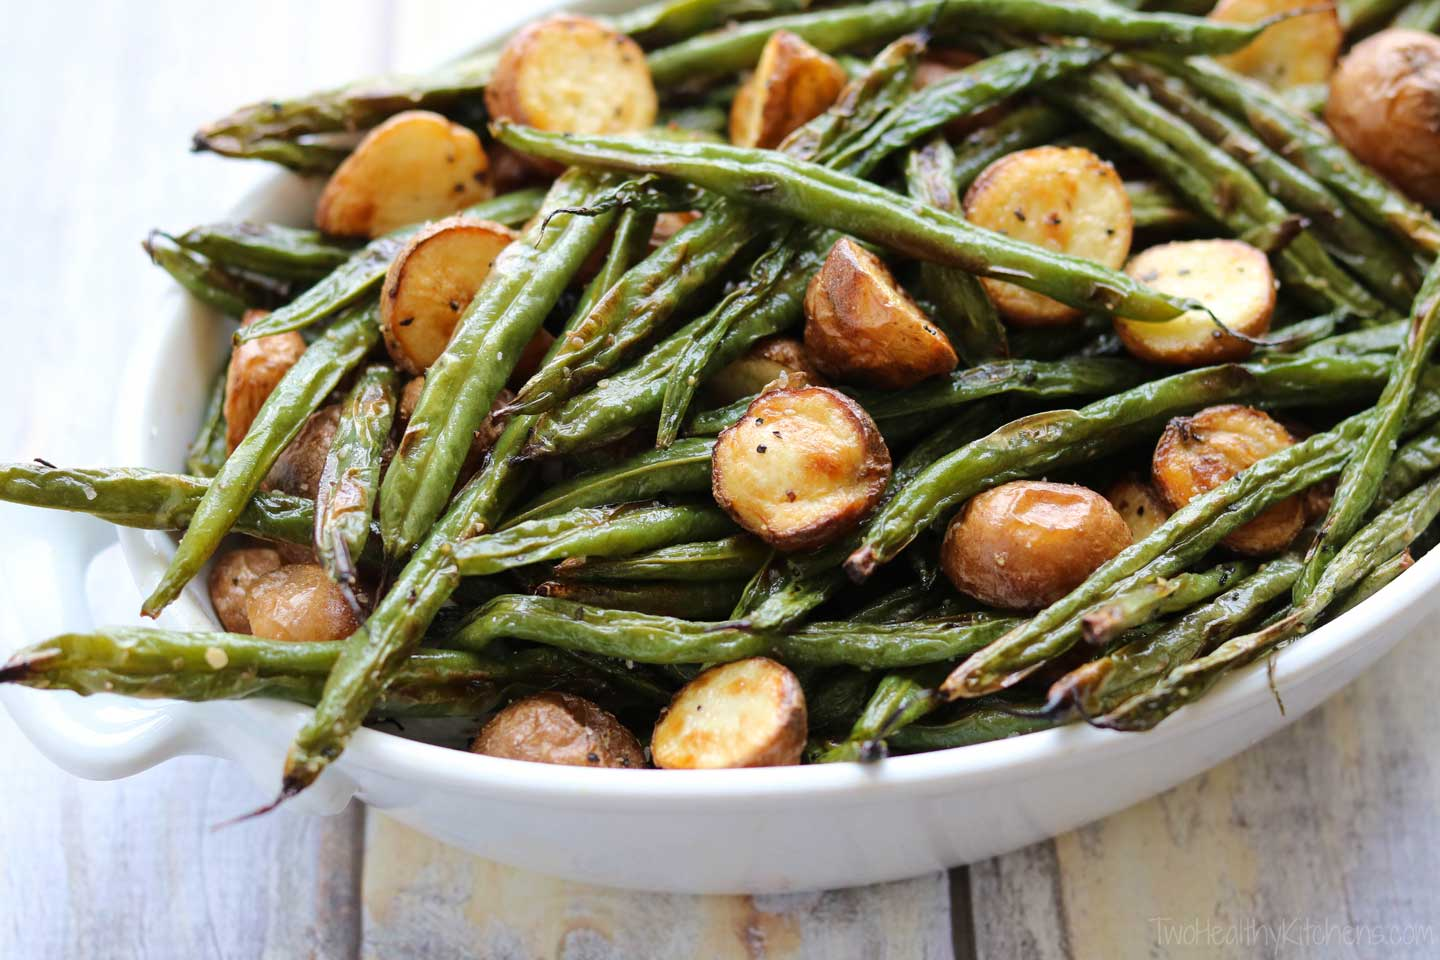 Blistered green beans take on even more great flavors and textures when you mix them with roasted red potatoes. Those potatoes get perfectly crispy on the outside, fluffy on the inside. Amazing! And so very simple!